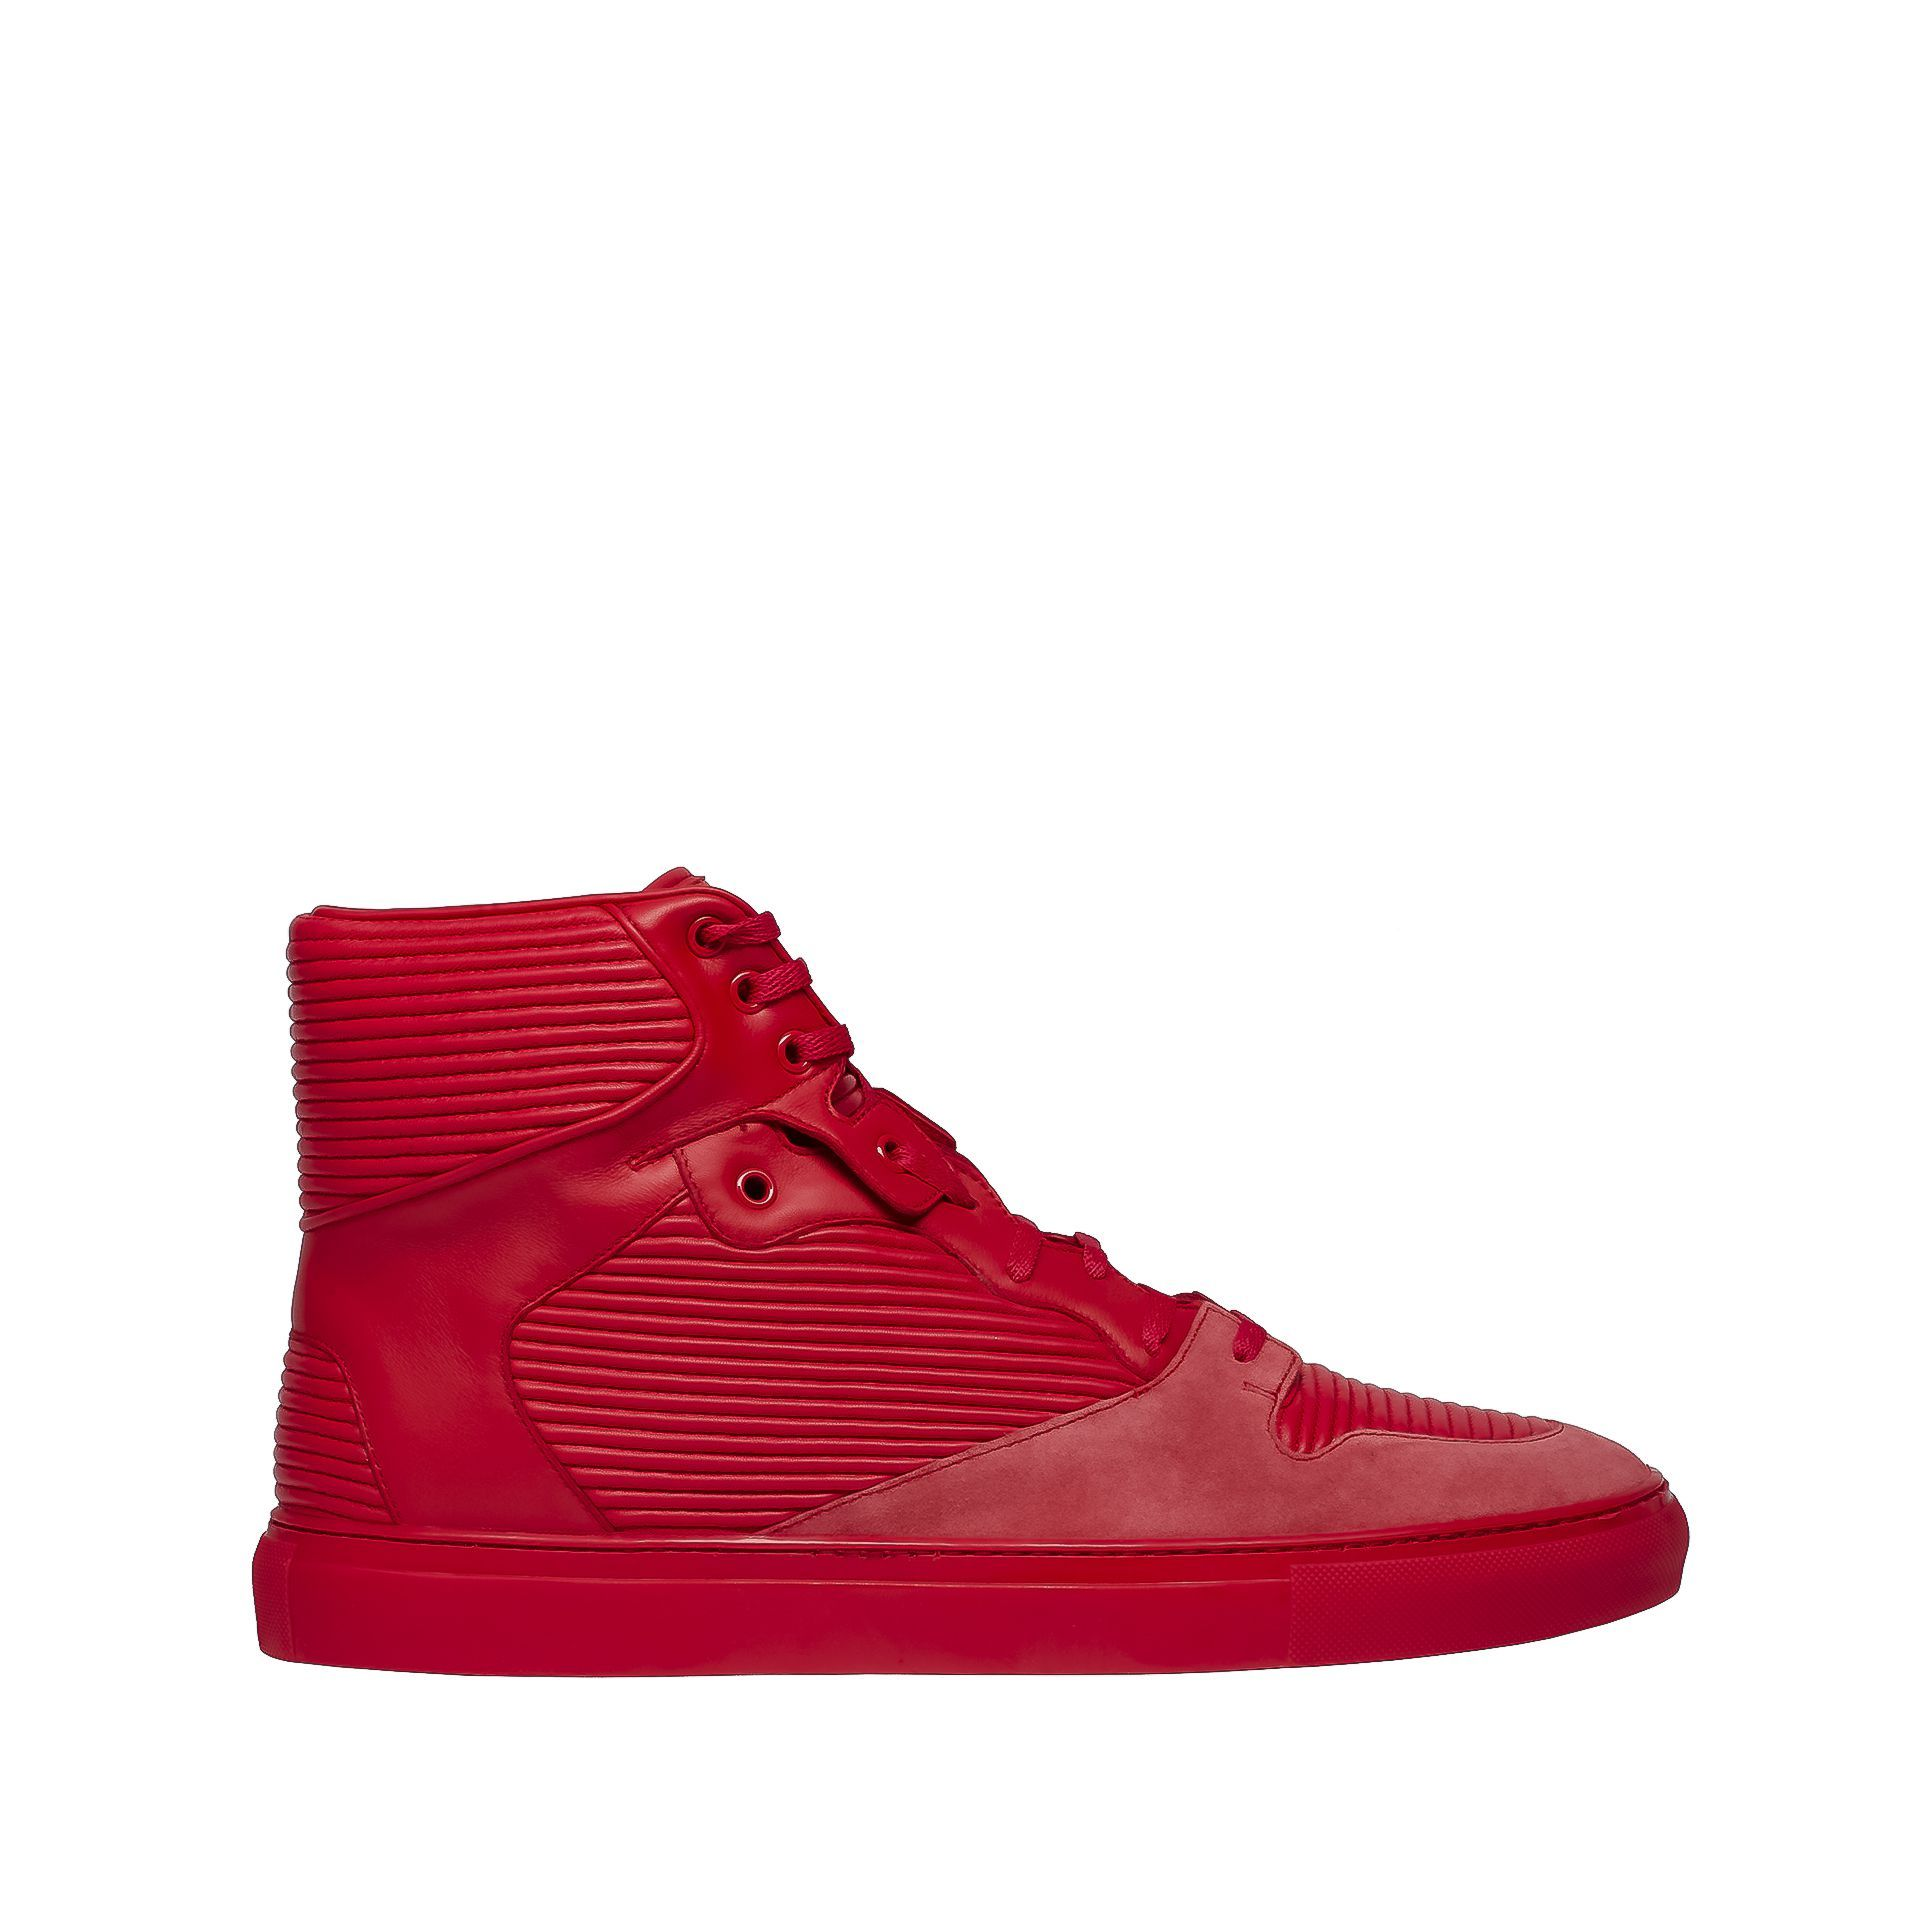 Running shoes for men, Red sneakers